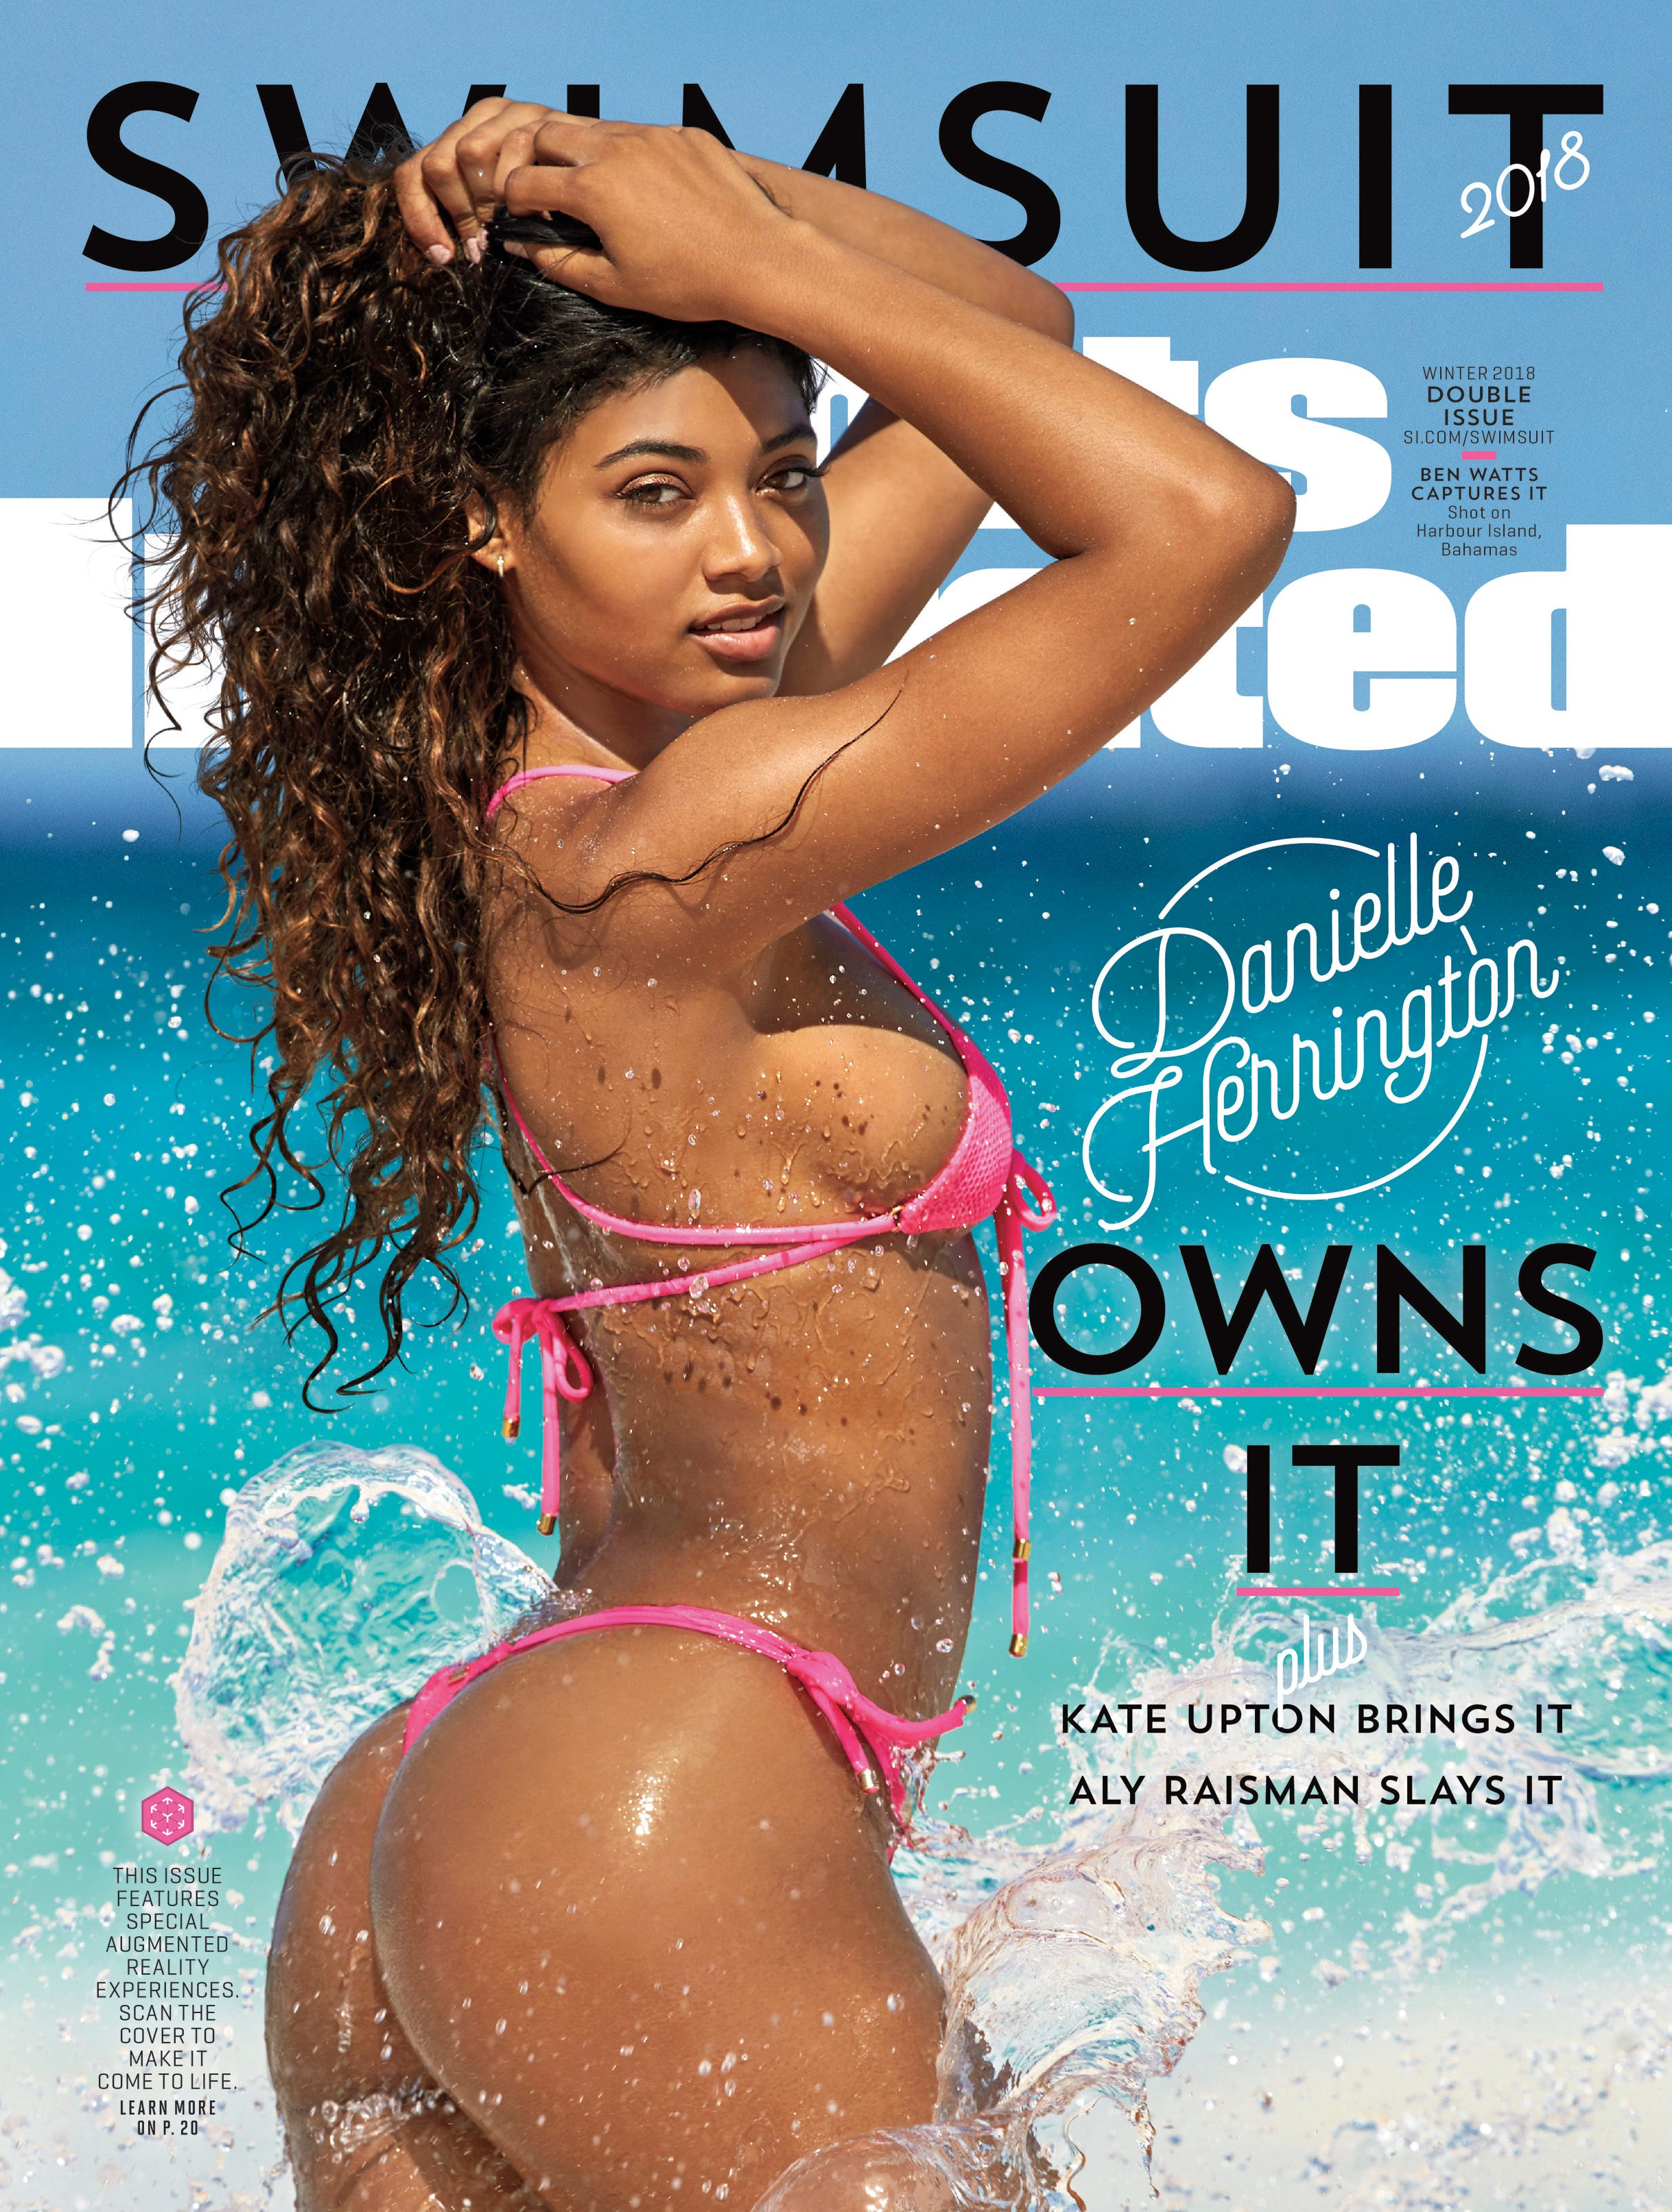 Who is Danielle Herrington? Get to know the Swimsuit Issue cover girl